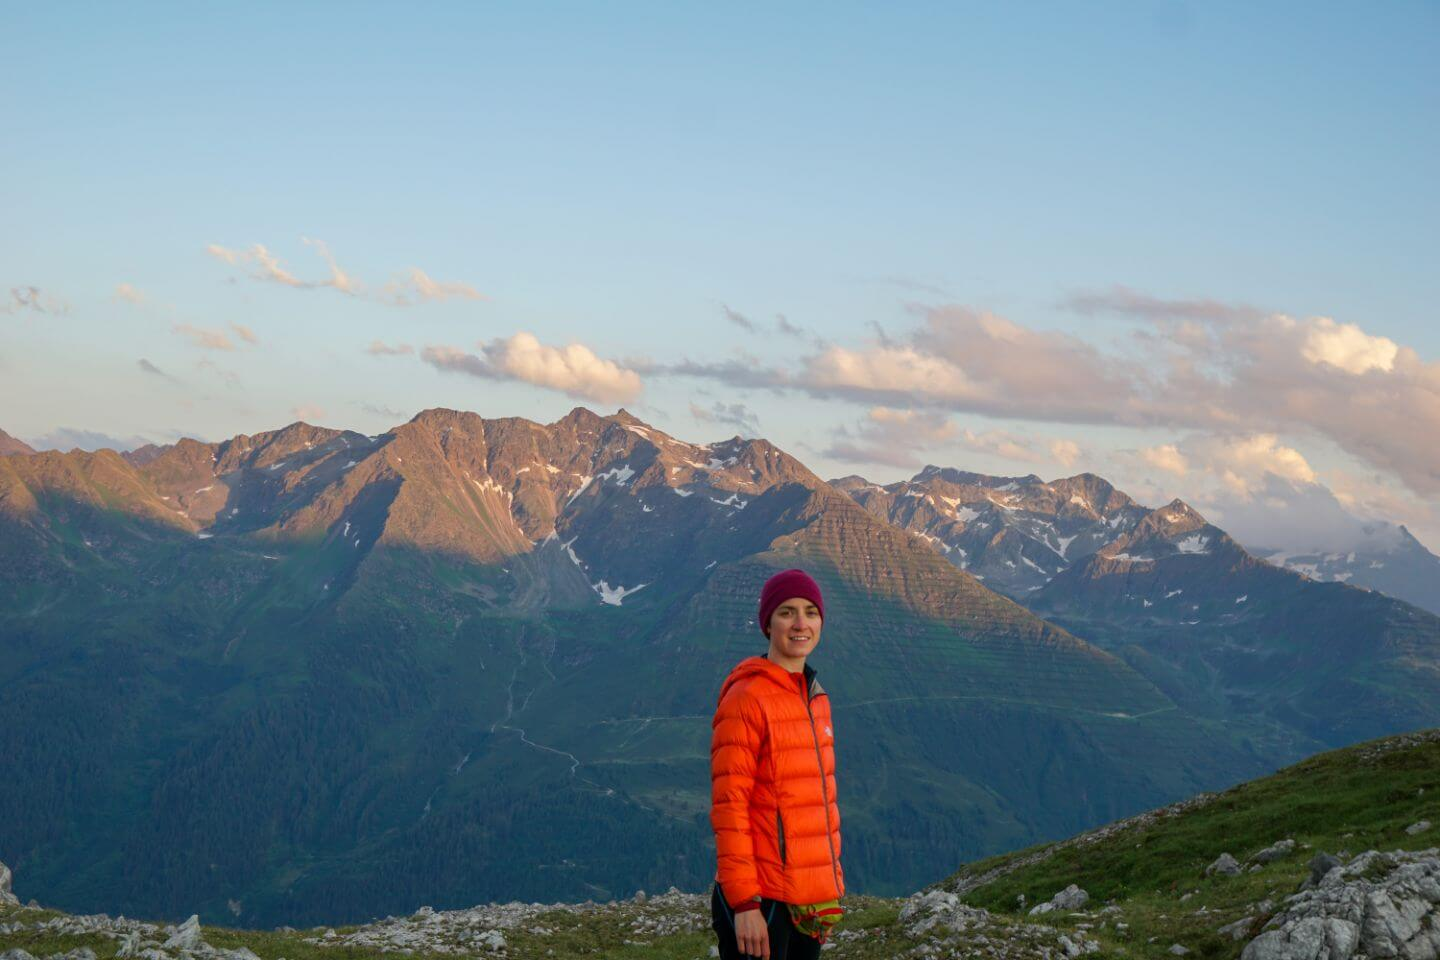 Verwall Mountains from the Lechtal Alps, Austria